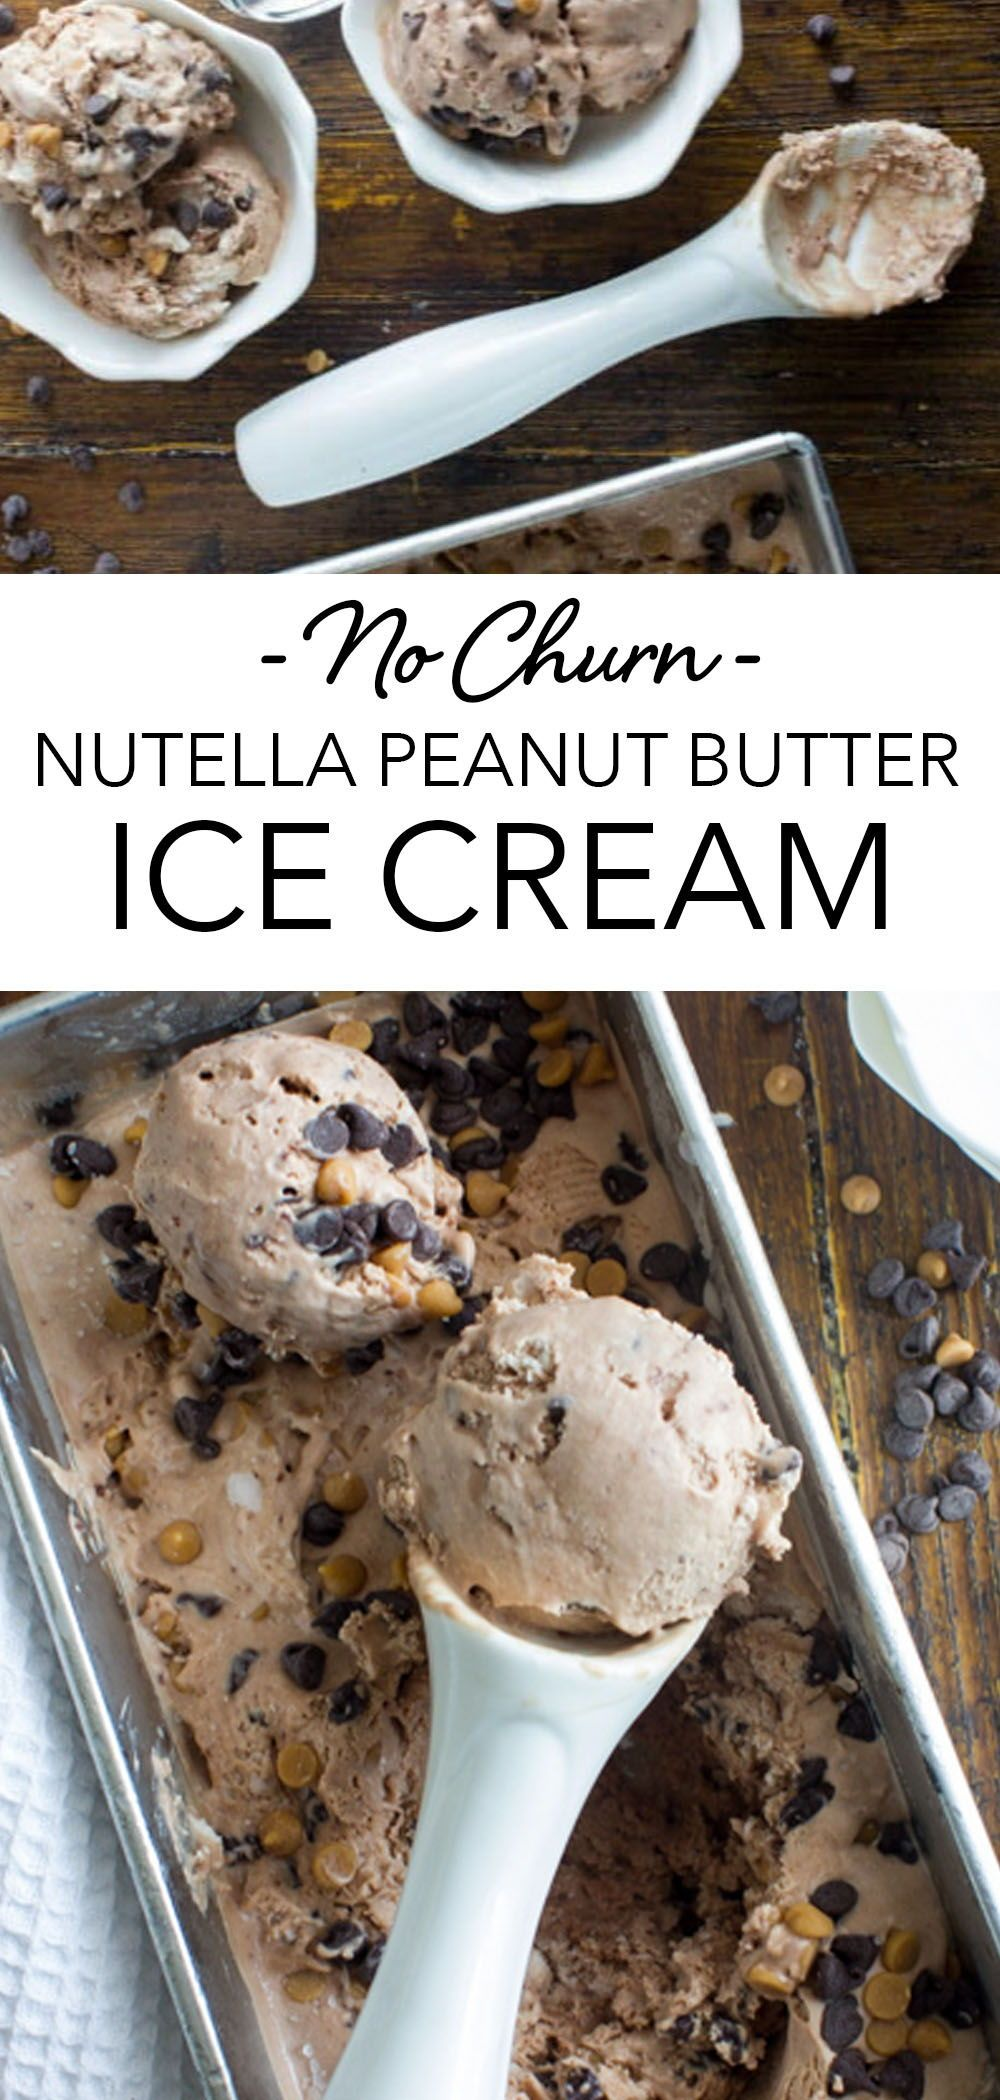 Nutella Peanut Butter Chip Easy No Churn Ice Cream Made With Cream Sweetened Condensed Milk Nut In 2020 Ice Cream Recipes Homemade Ice Cream Recipes Nutella Recipes